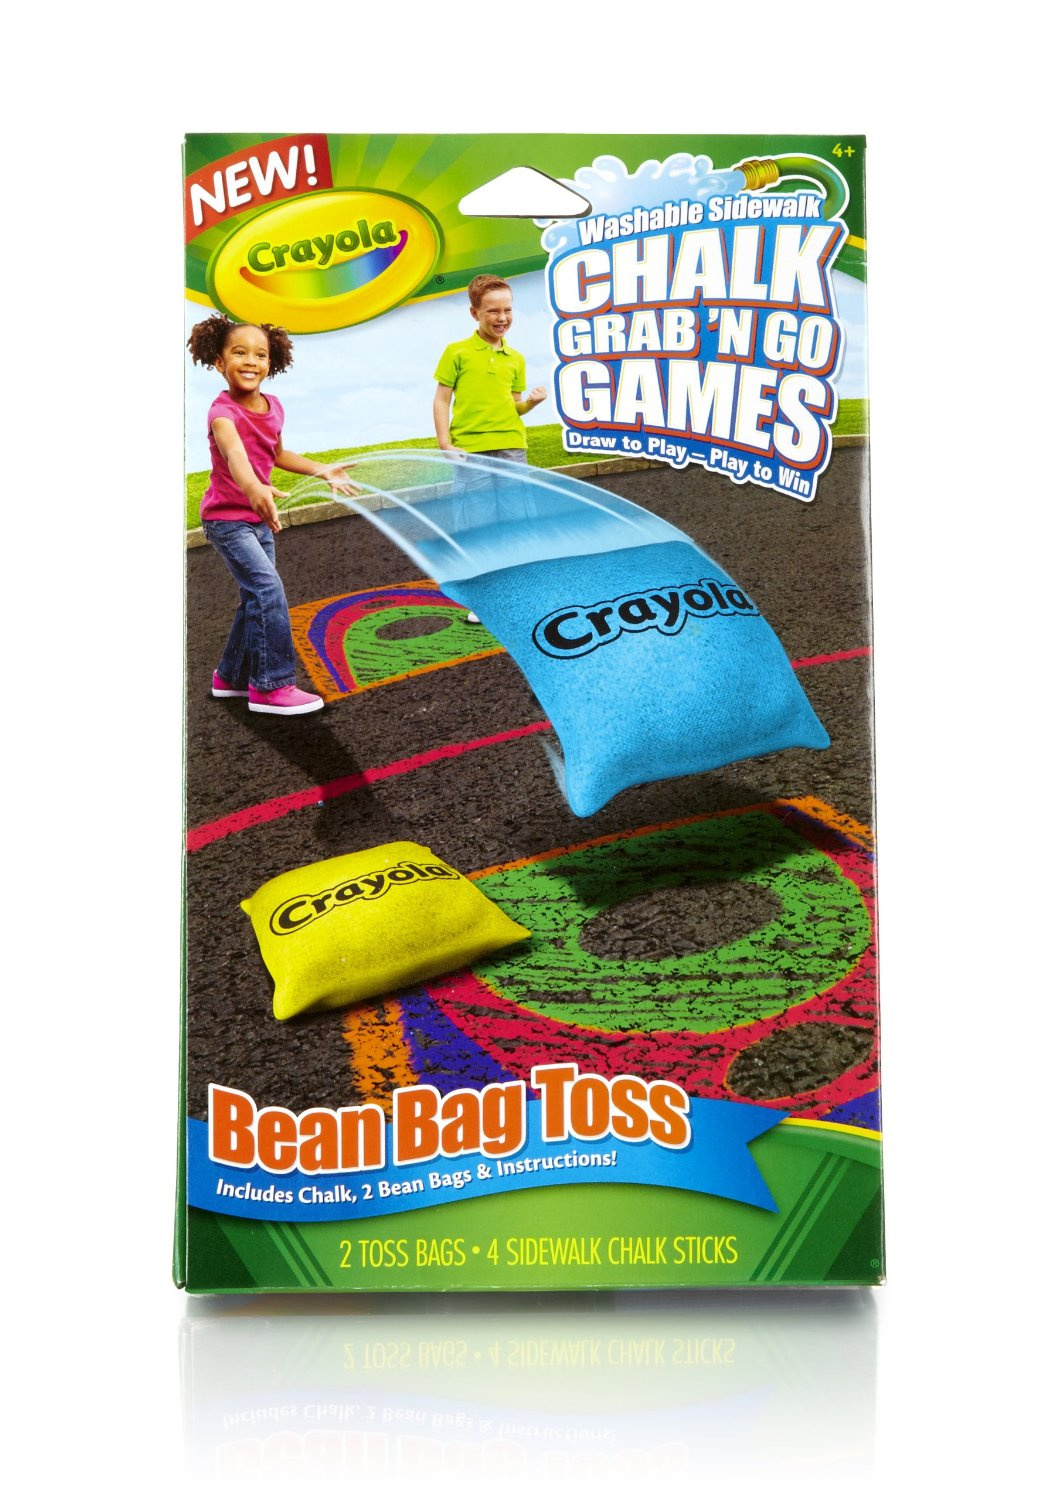 Crayola Bean Bag Toss Chalk Grab and Go Games, sidewalk chalk, outdoor game ideas for kids, chalk, crayola